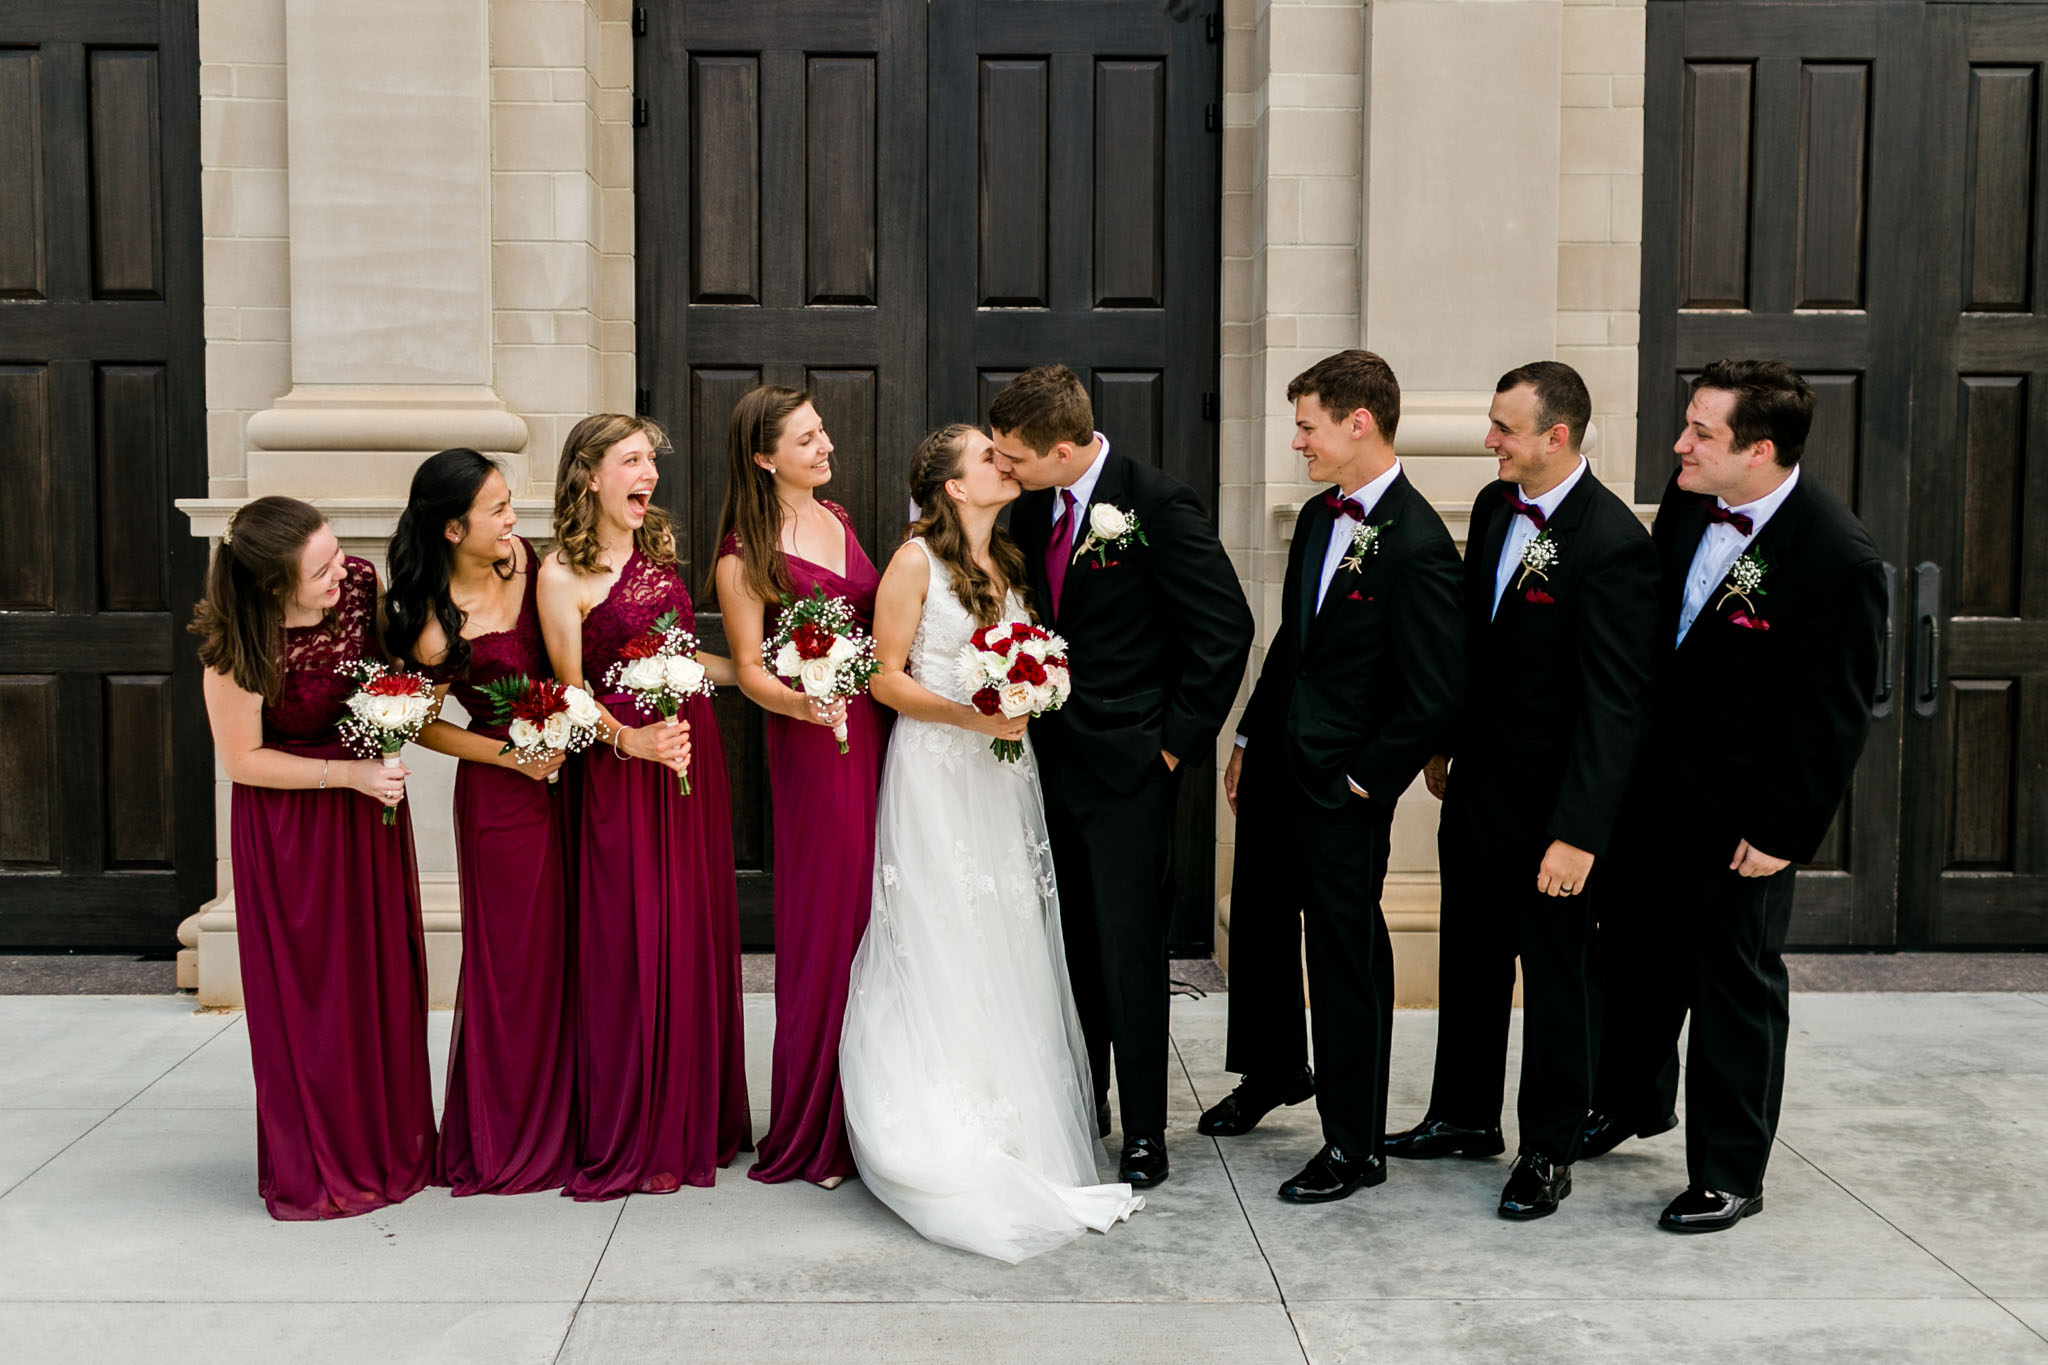 Wedding party photo with bride and groom kissing | Raleigh Wedding Photographer | By G. Lin Photography